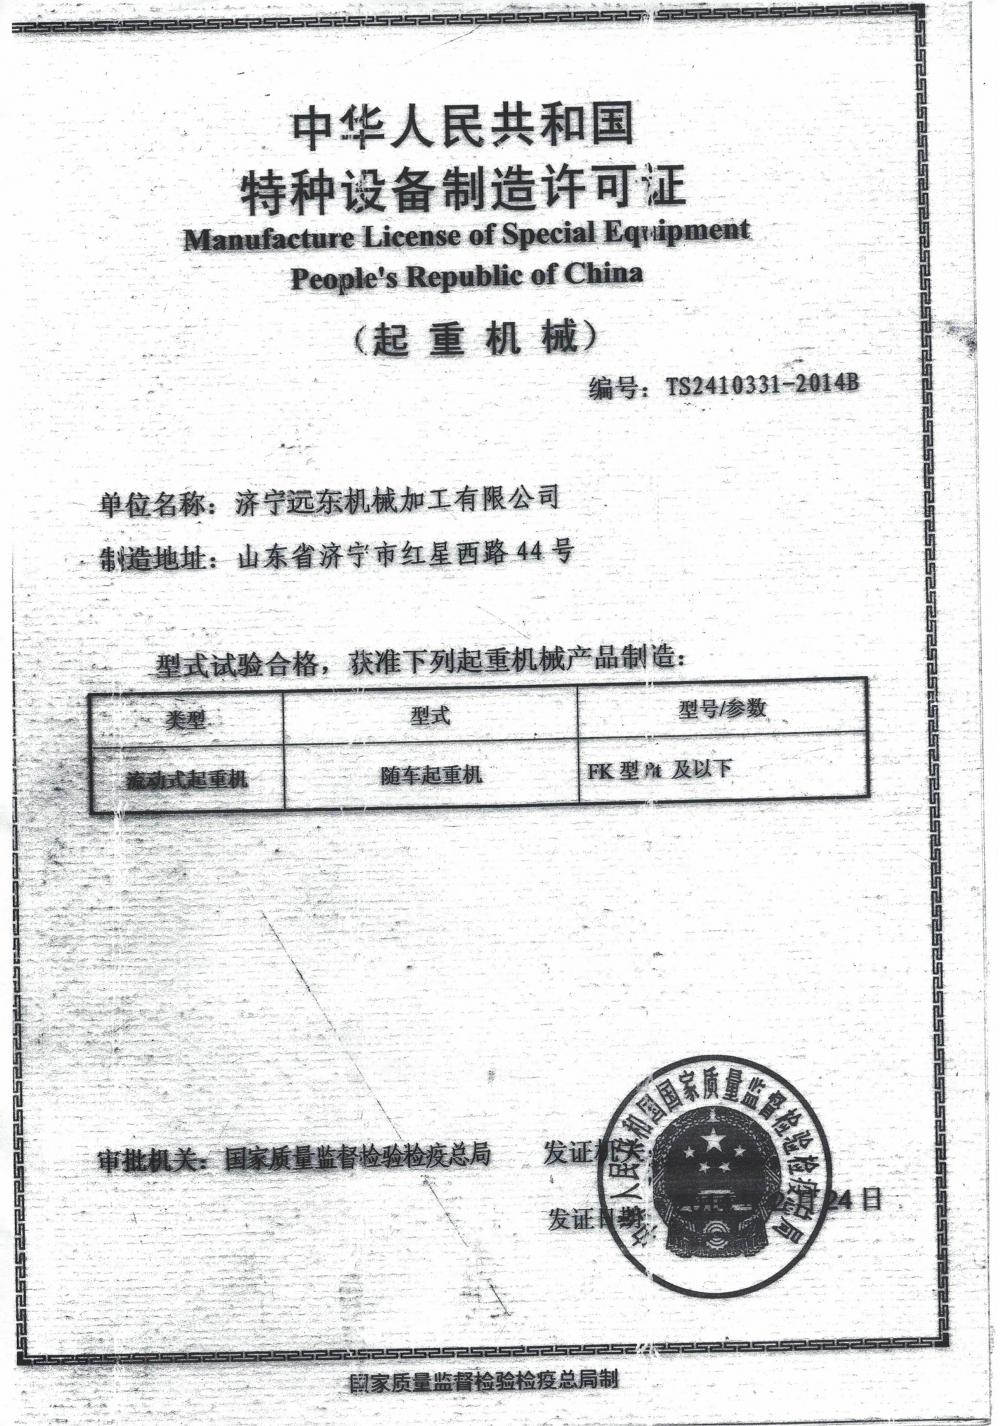 Manufacture License of Special Equipment-2